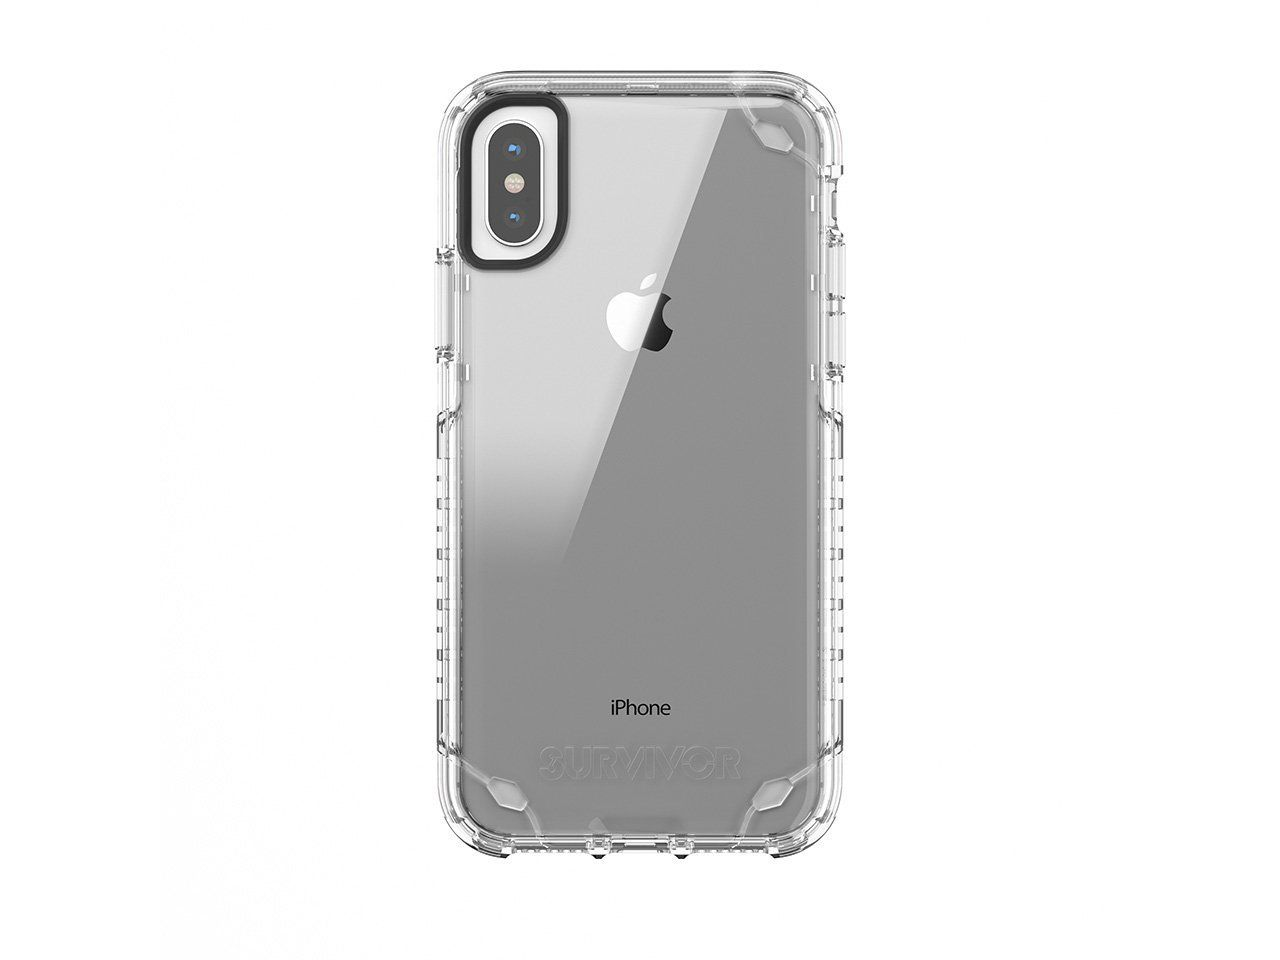 Griffin iphone x protective case survivor strong 7ft